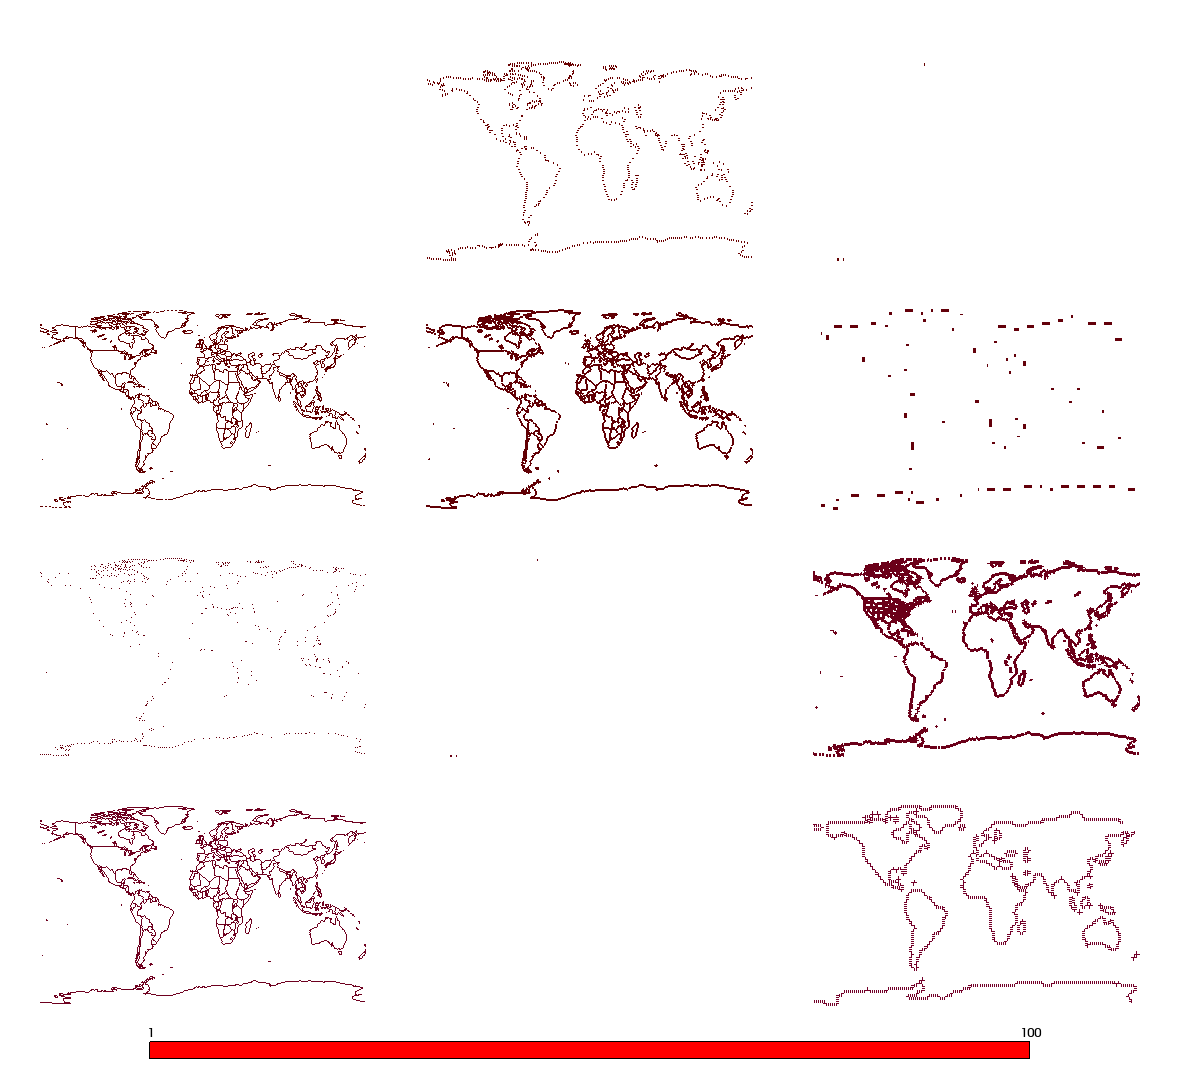 test_continents